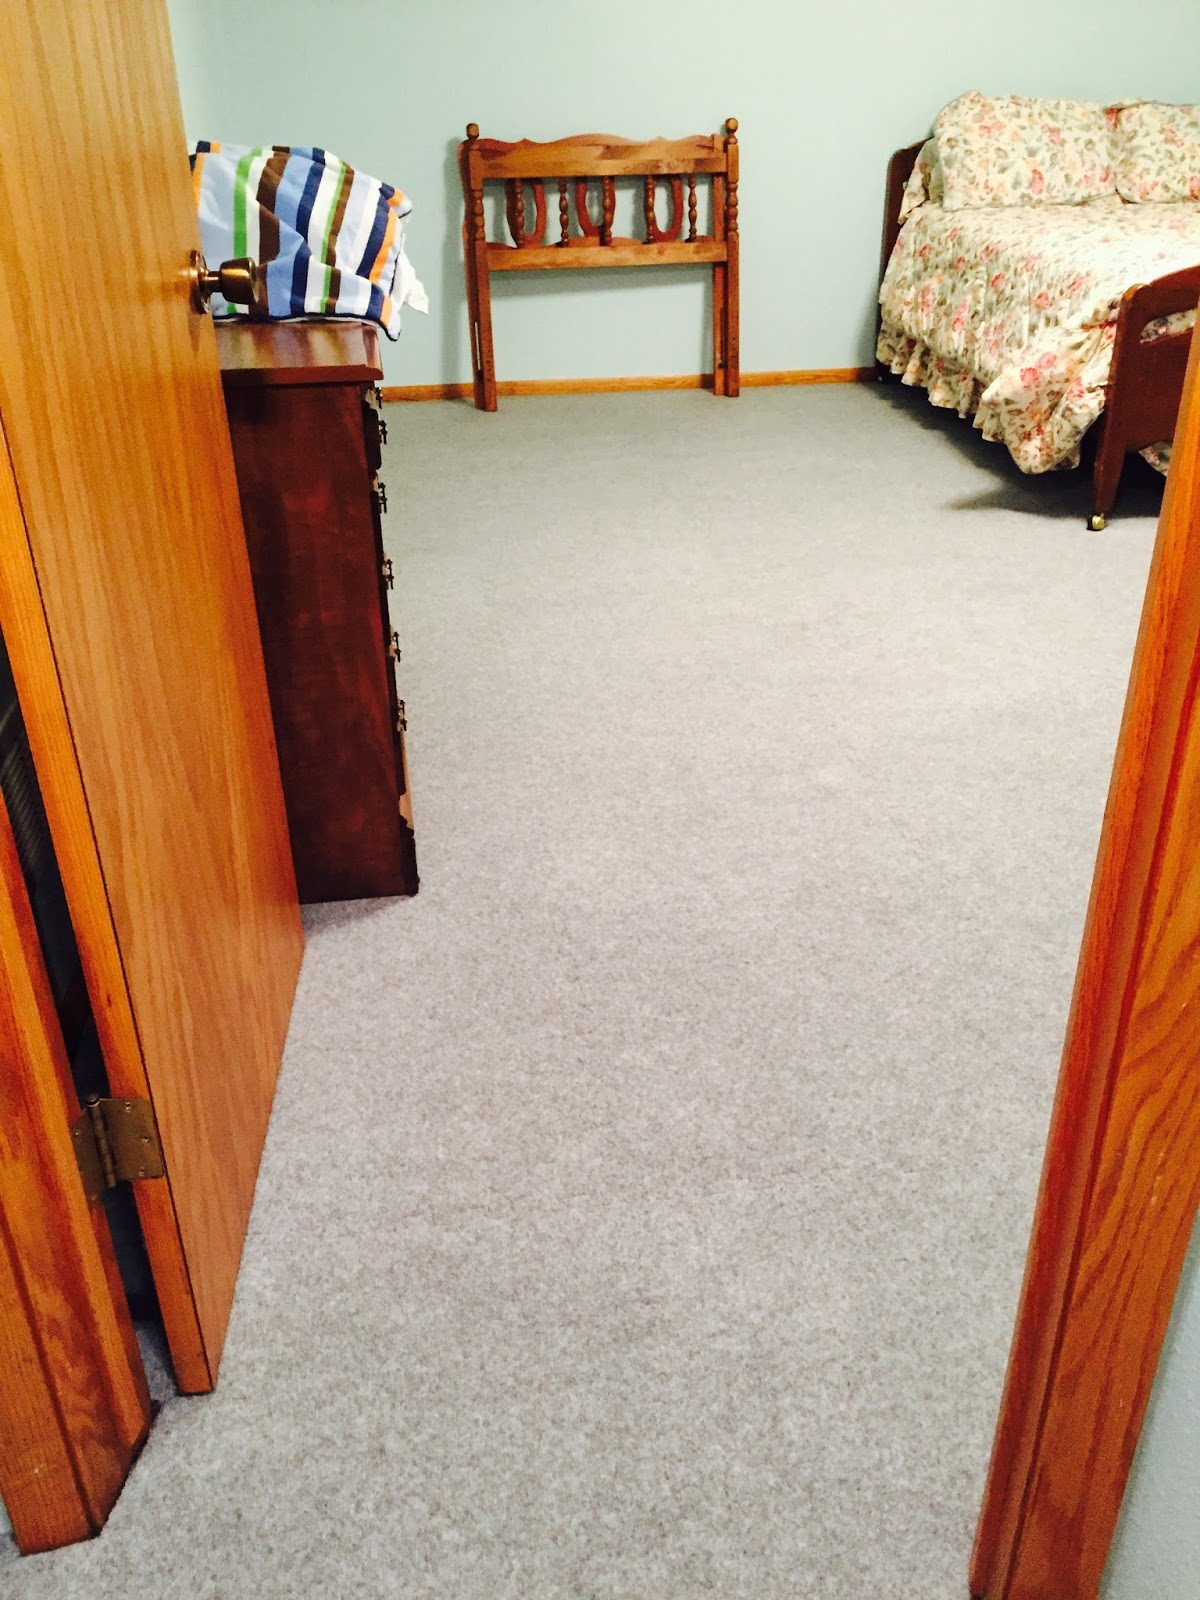 Greatmats Specialty Flooring Mats And Tiles Which Carpets Are Best - Best flooring for cold basement